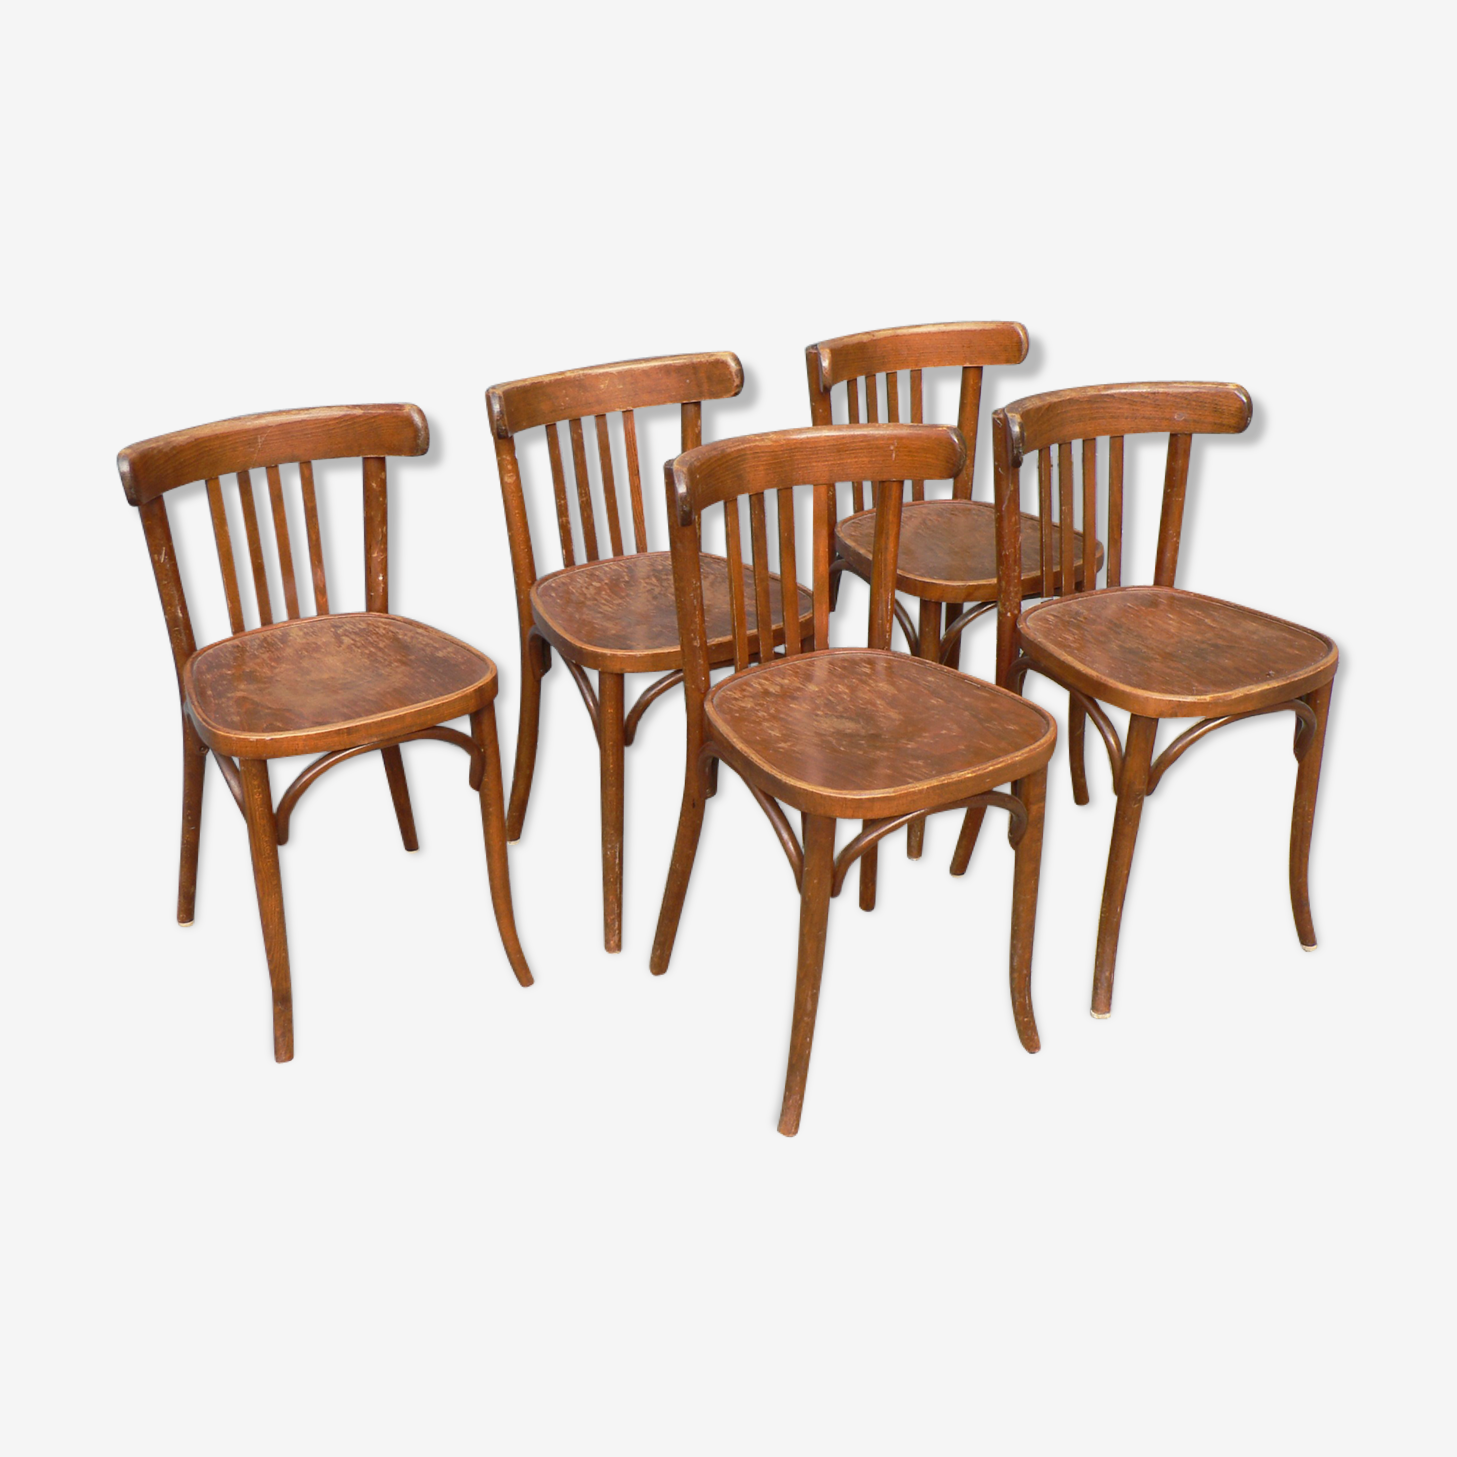 Set of 5 Bistro chairs wood